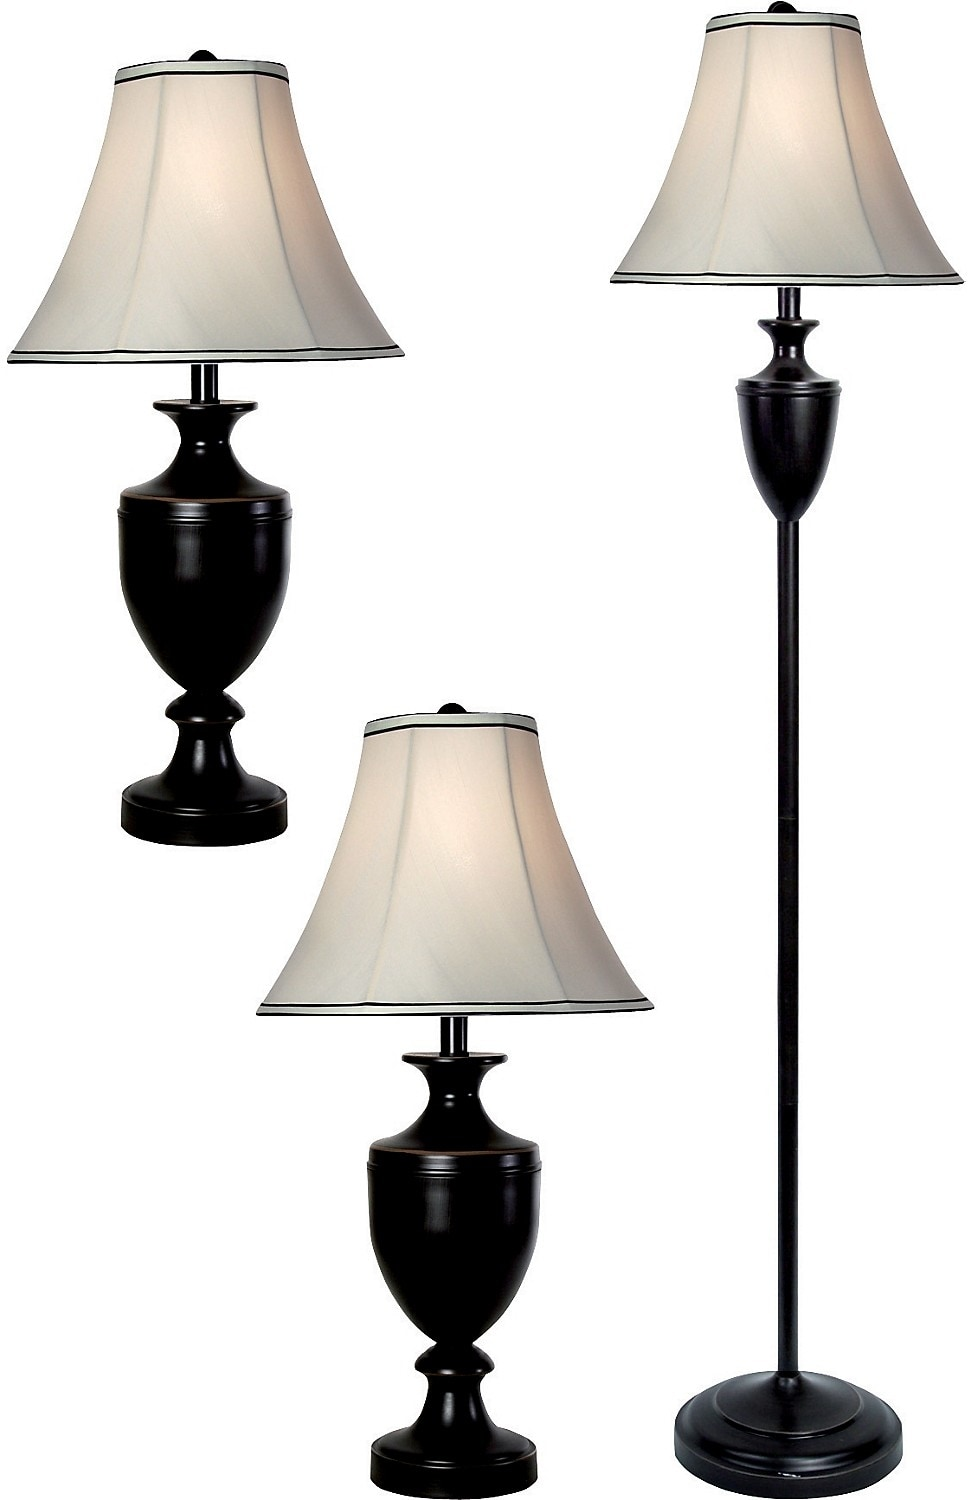 Bronze-Wood Finish 3-Piece Floor and Two Table Lamps Set